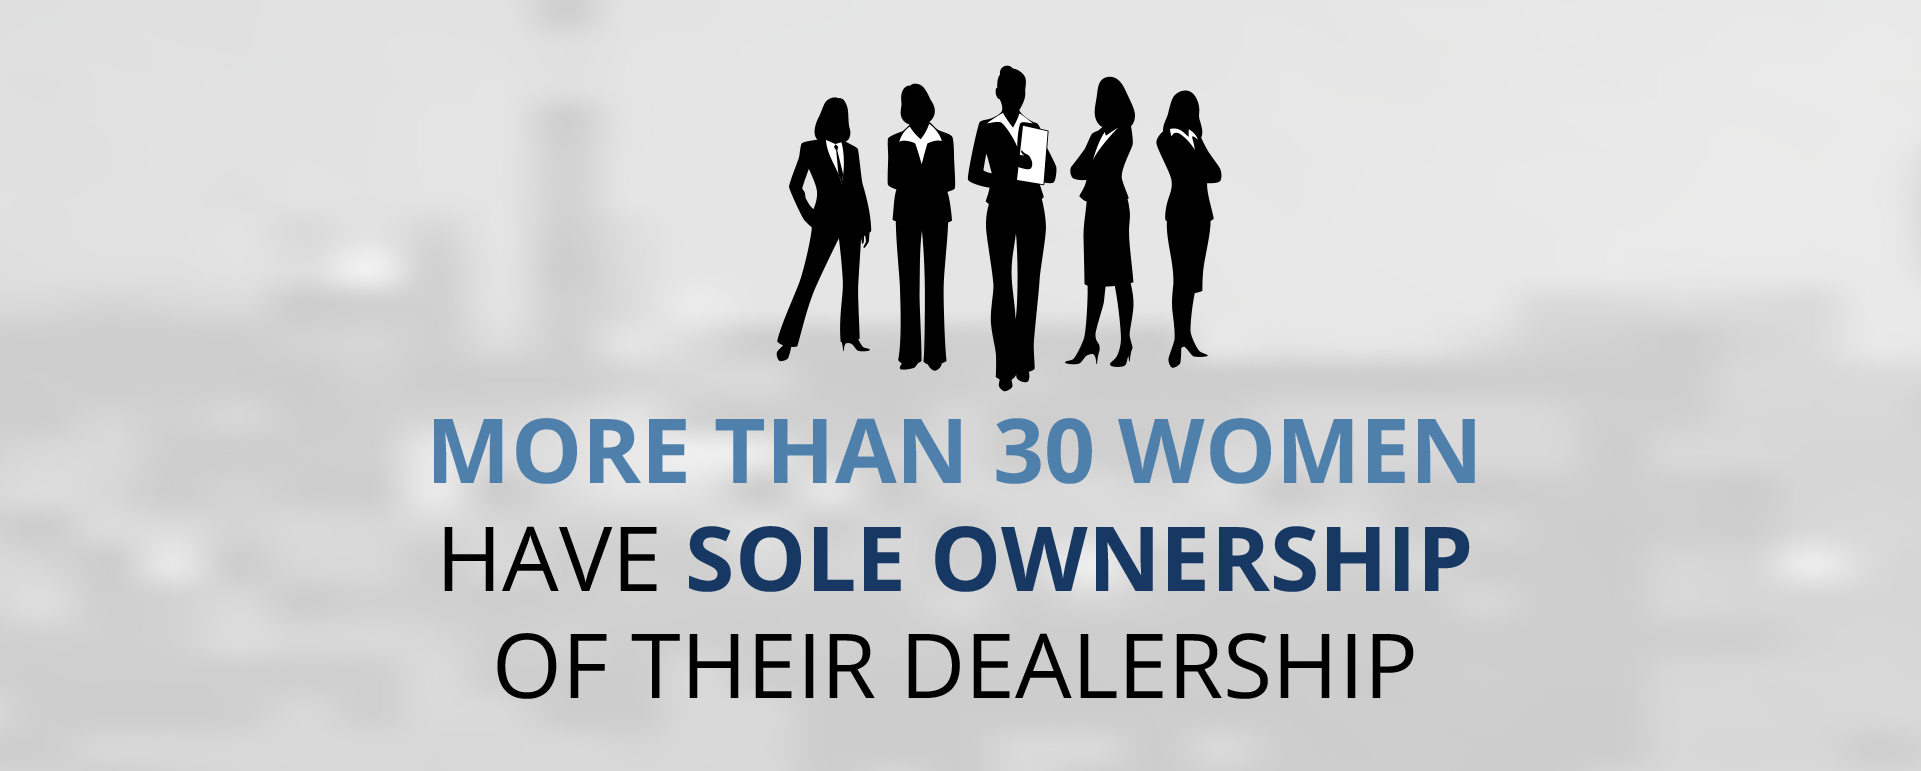 More than 30 women have majority ownership of their dealership